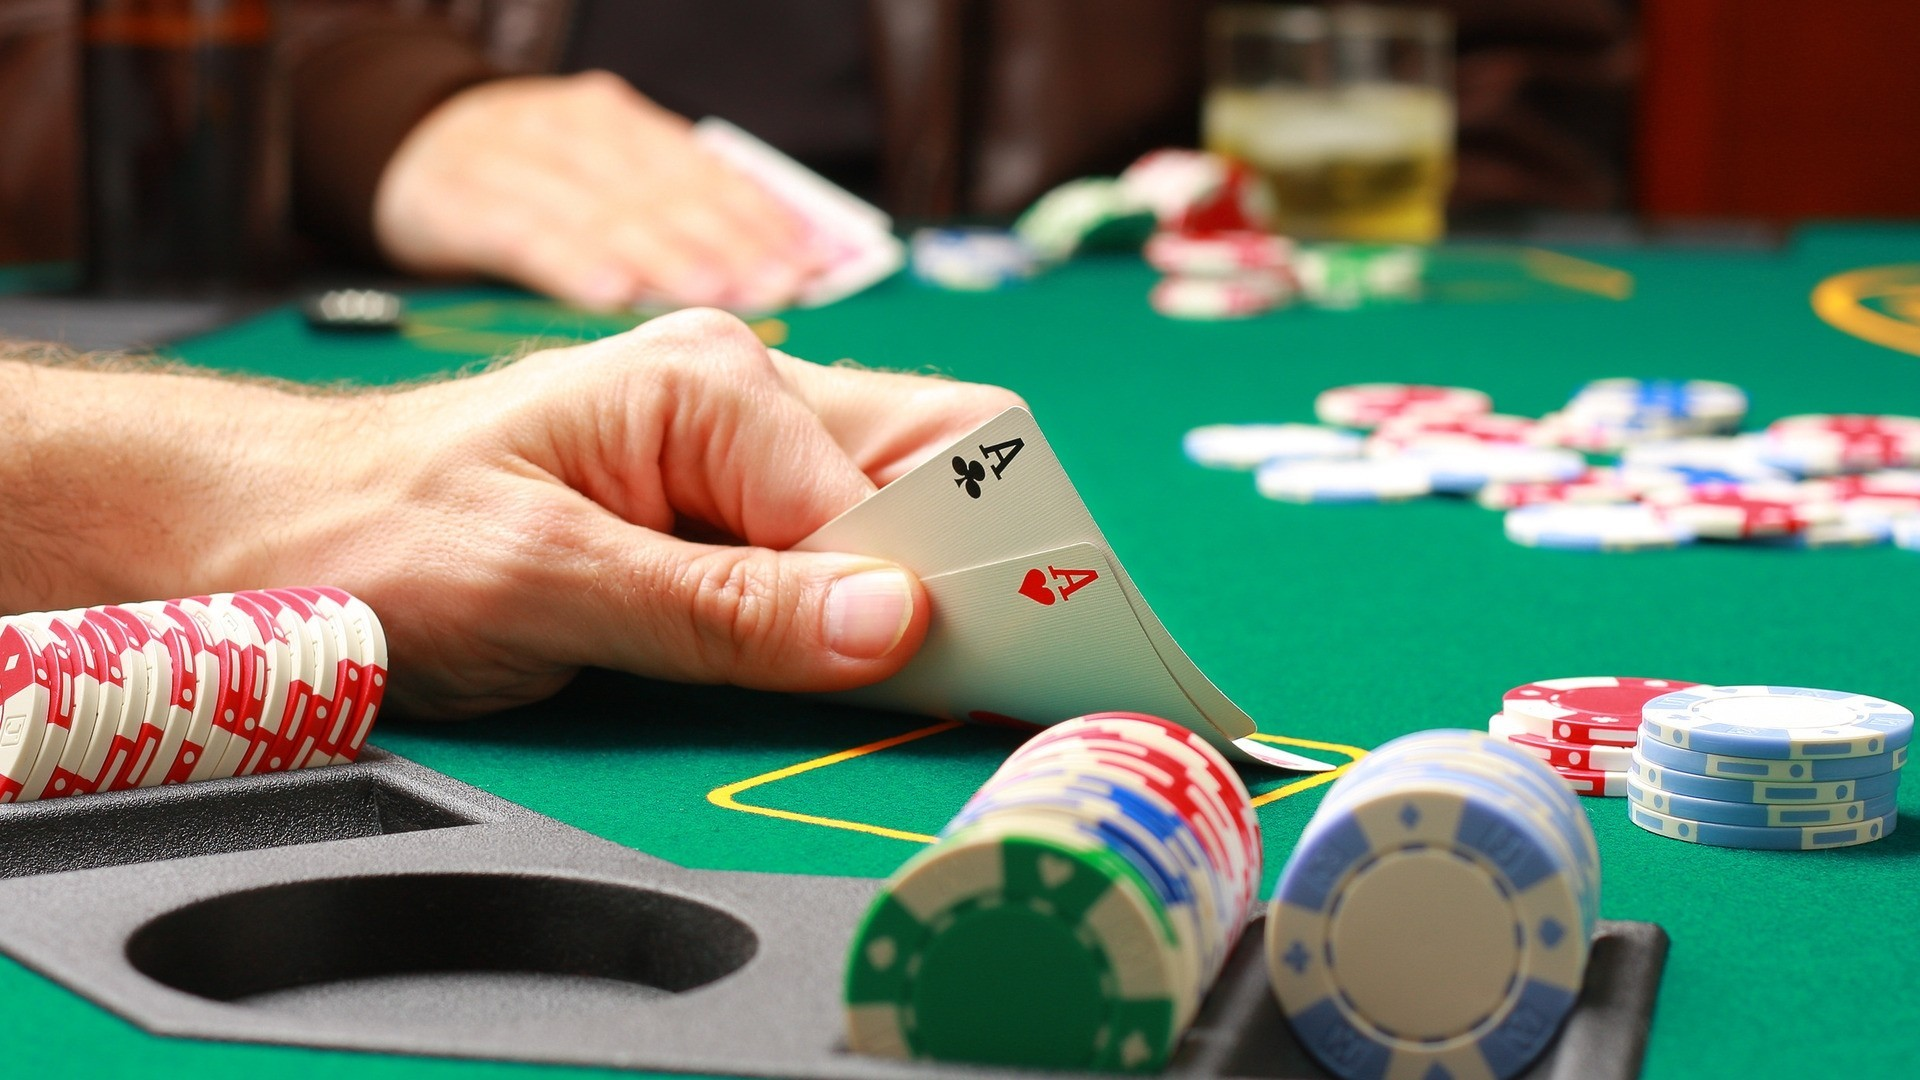 The Untold Trick To Casino In Less Than 3 Minutes